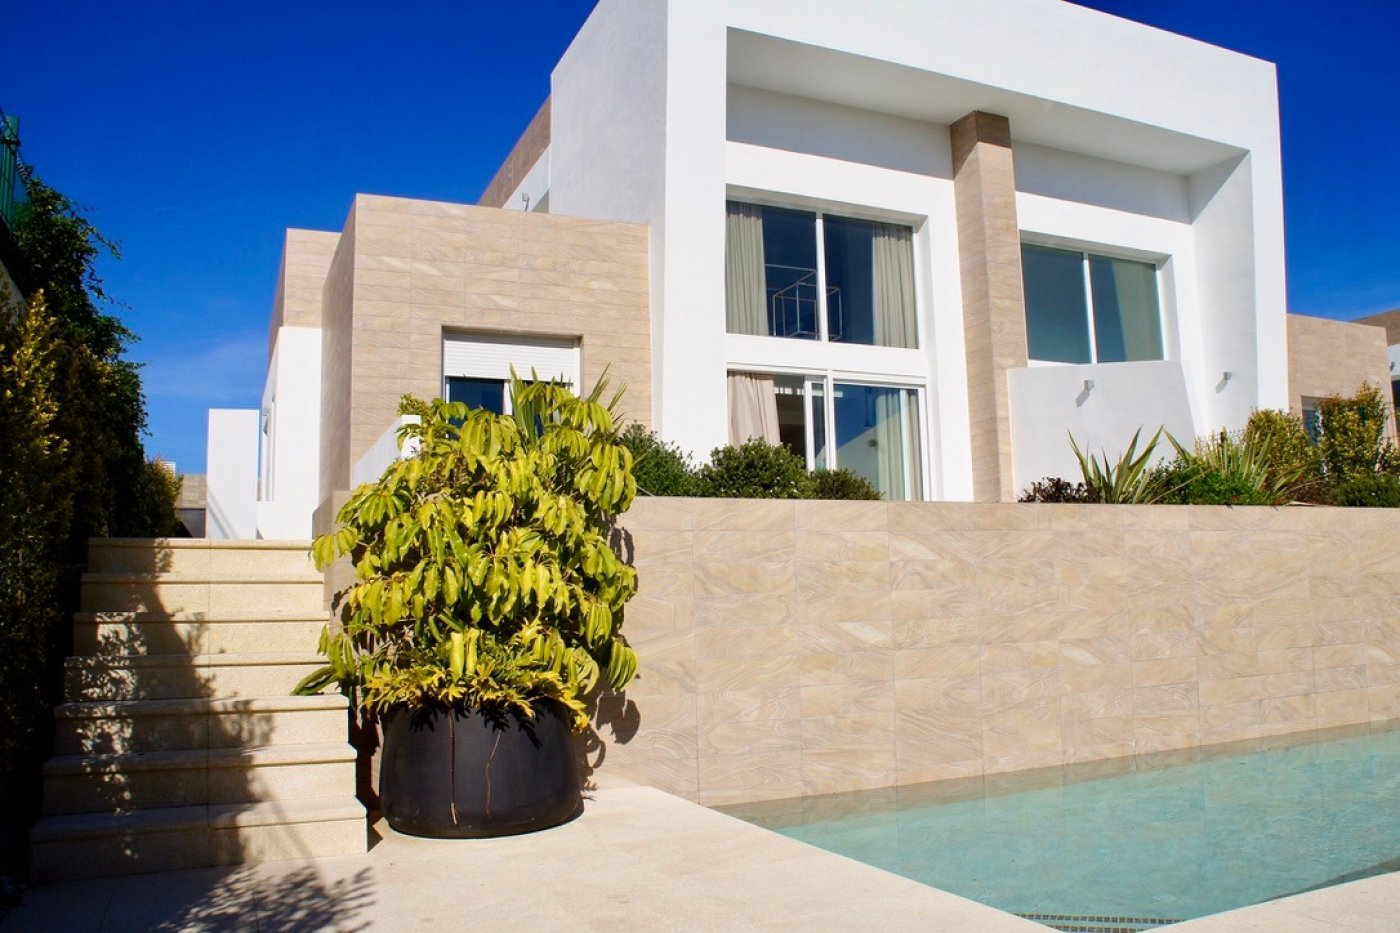 Villa de Lujo ref 3265-03167 for sale in La Finca Golf Spain - Quality Homes Costa Cálida